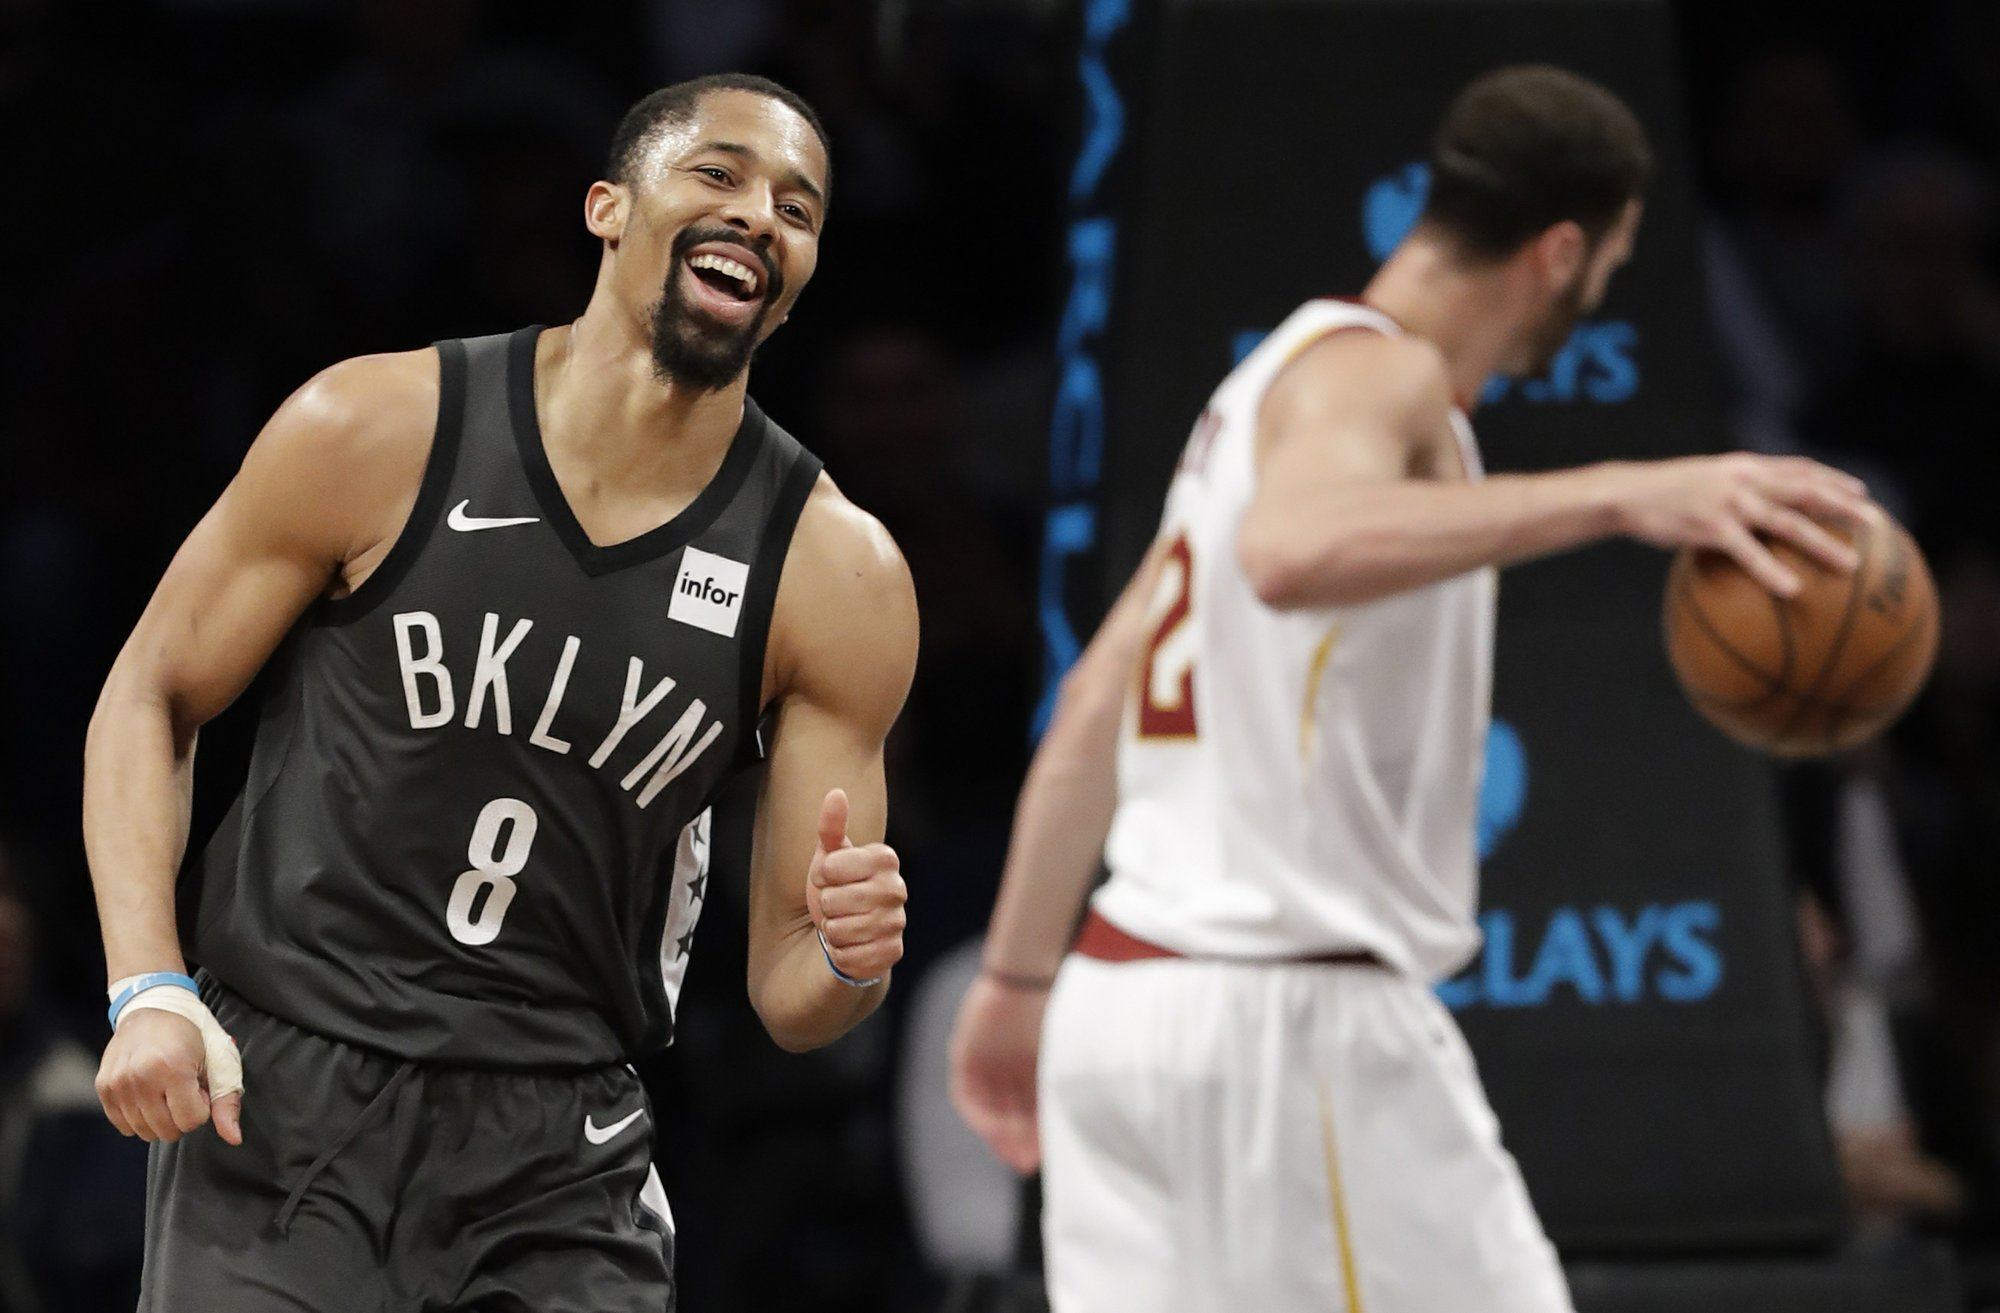 ae72e9a8762f Dinwiddie leads Nets in 4th as they beat Cavs 113-107